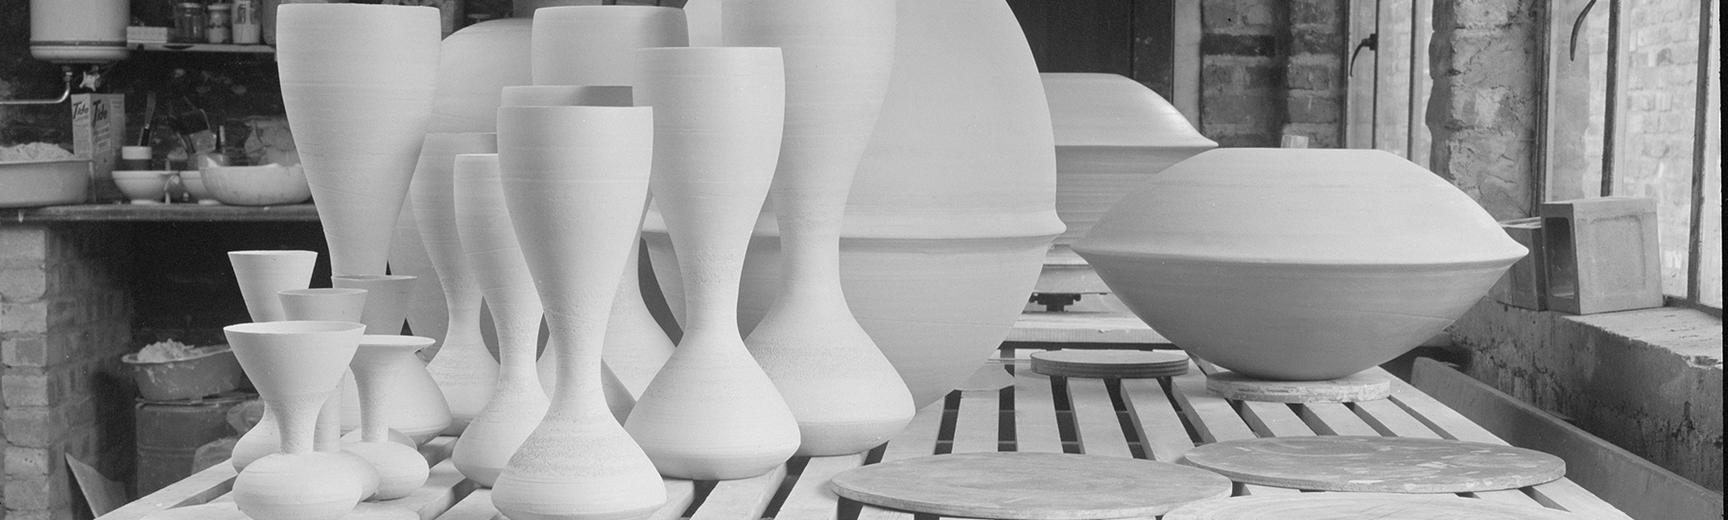 Ceramic vessels by Hans Coper © Jane Coper and Estate of the Artist